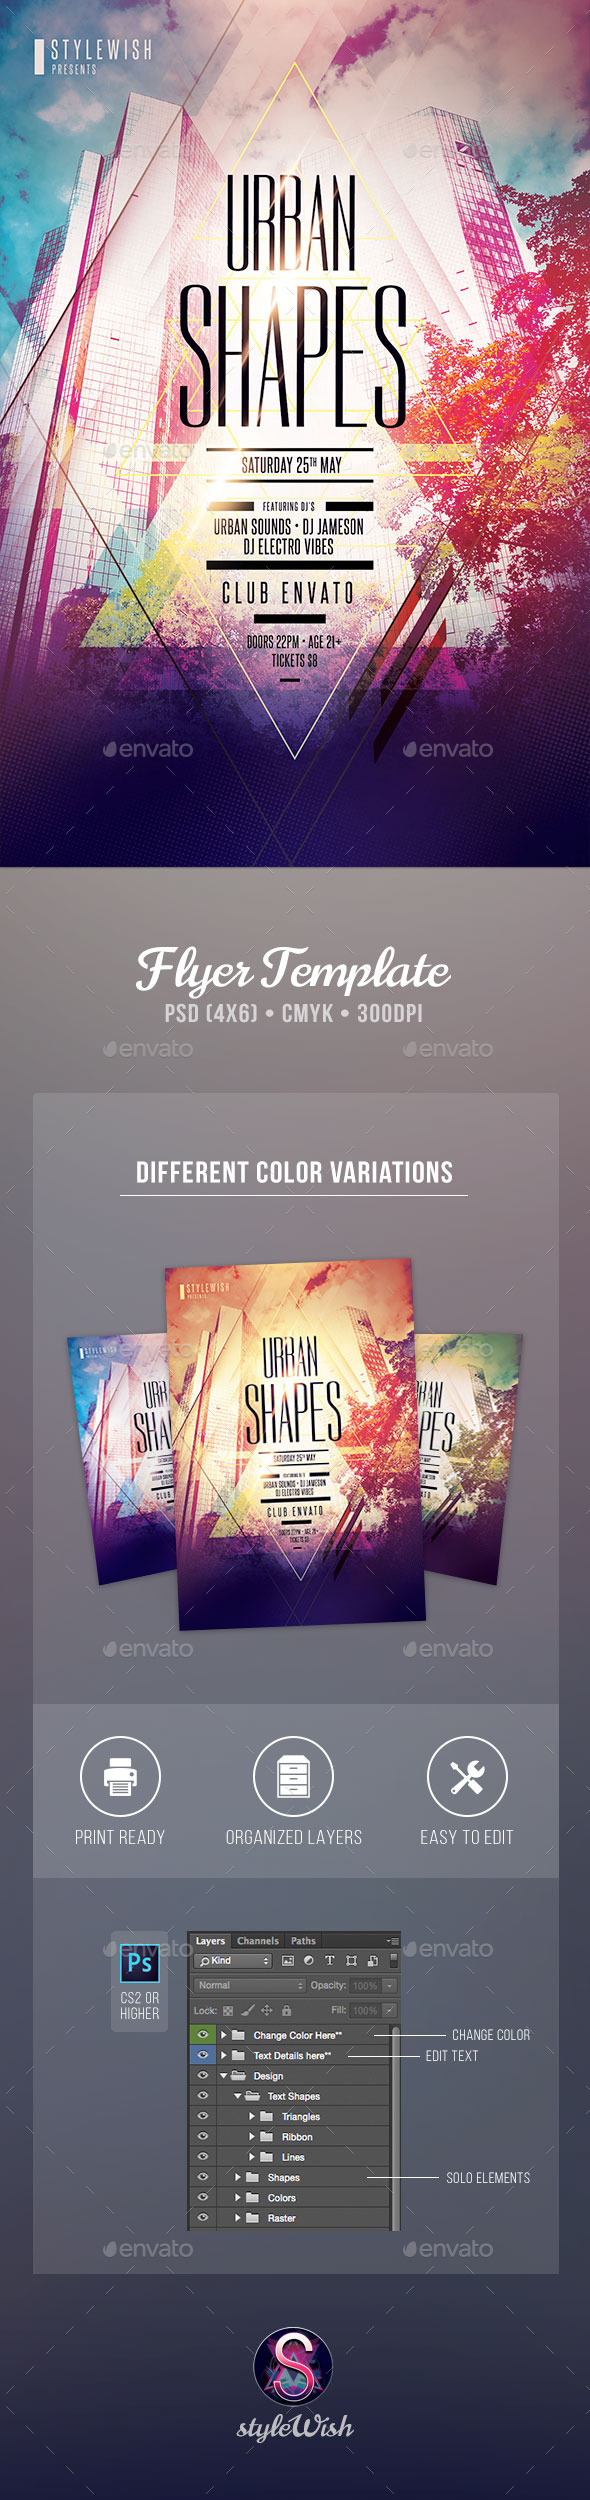 GraphicRiver Urban Shapes Flyer 11239797